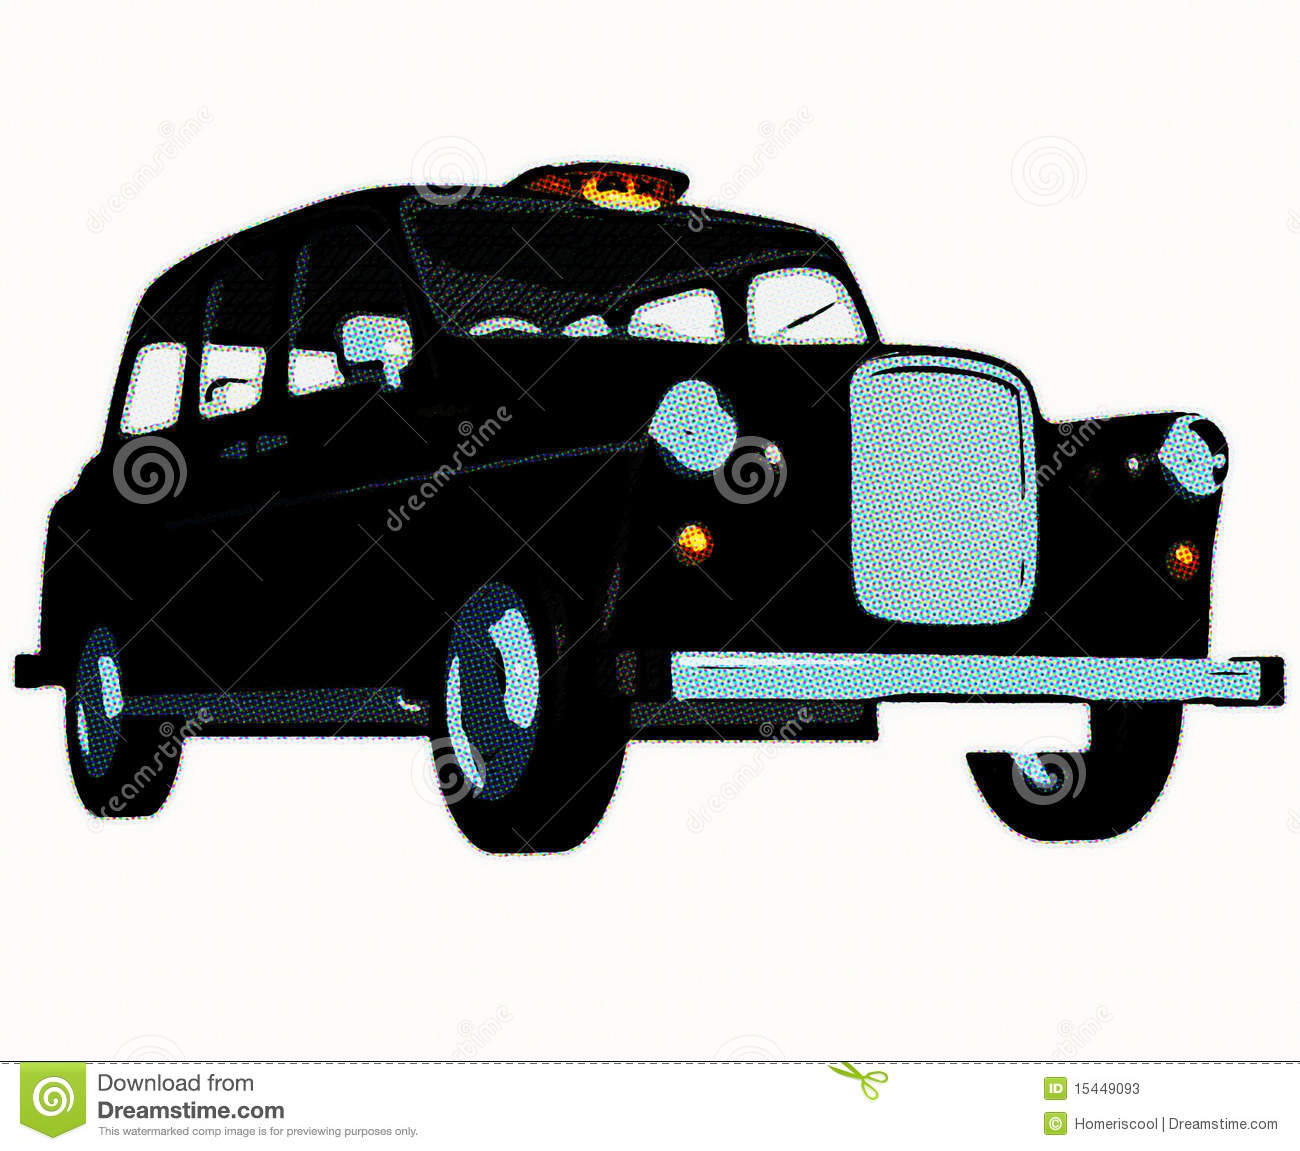 Traditional english taxi cab stock photos image 15449093 - Dessin taxi anglais ...